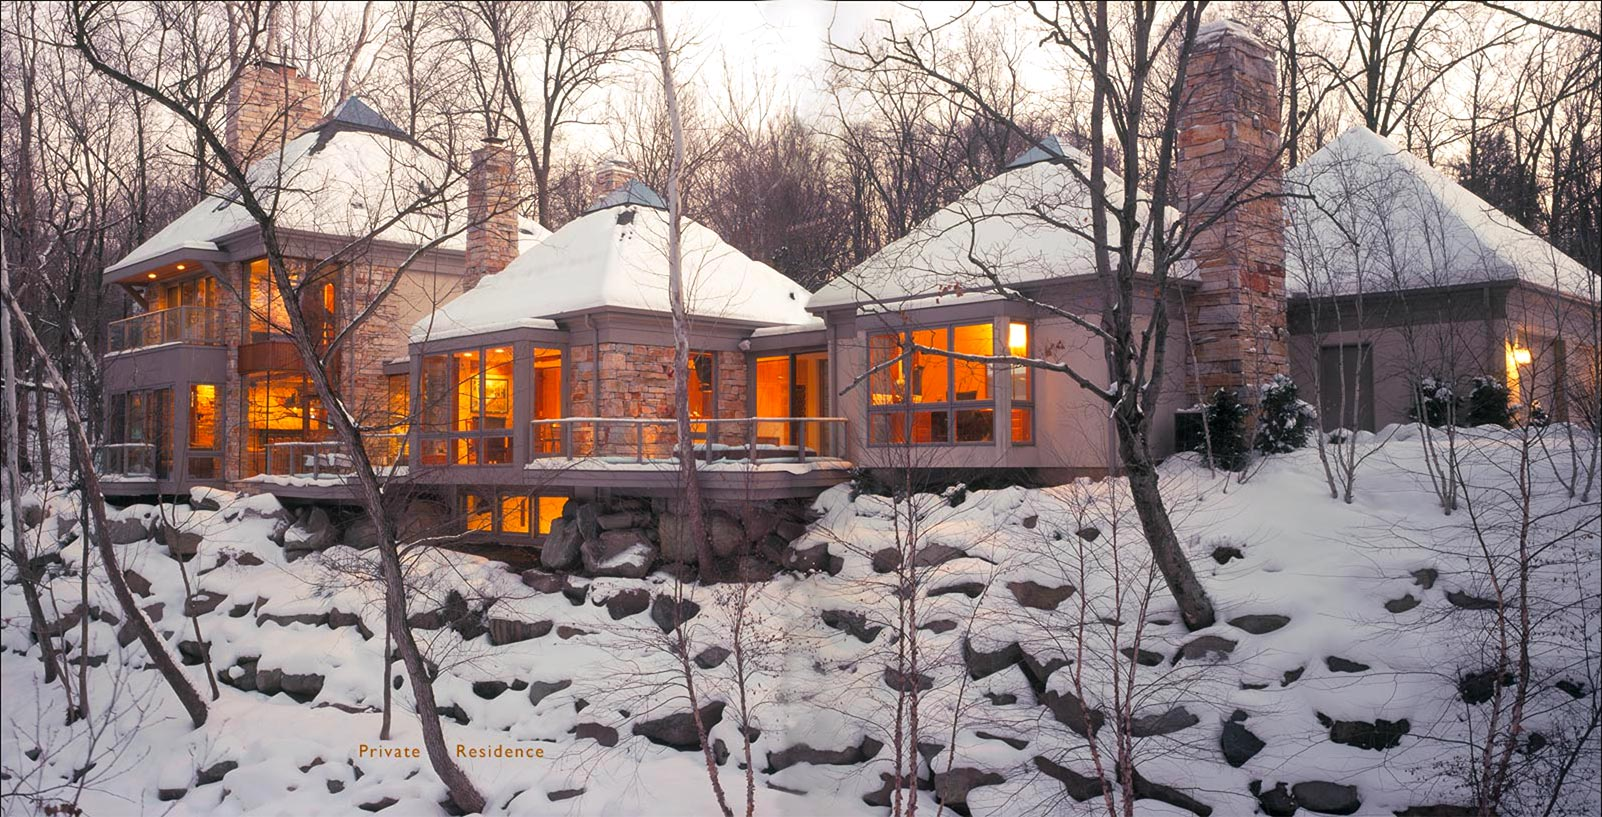 Stone Glass & Nature – New Construction, Private Residence 06